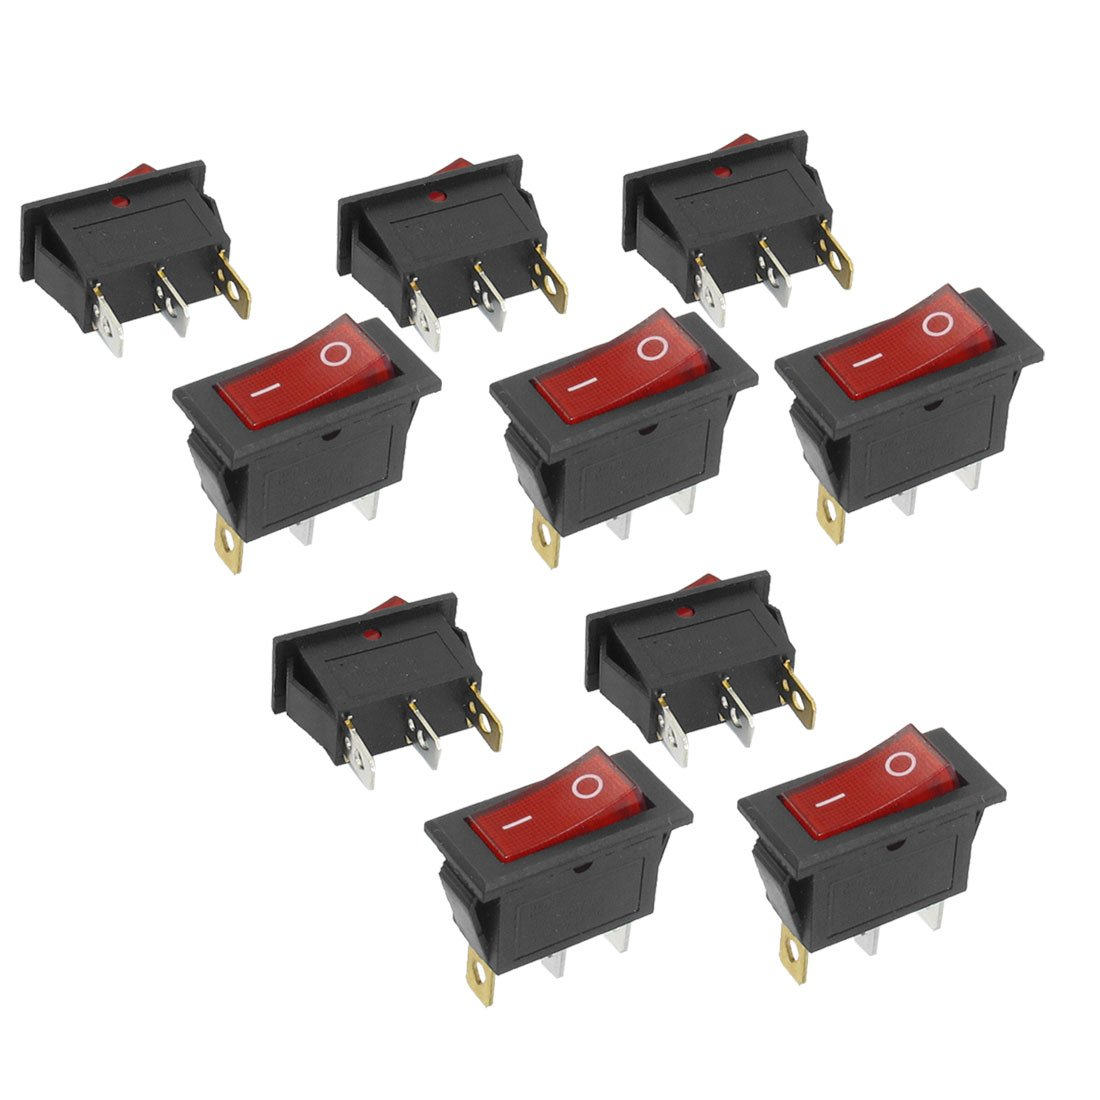 Promotion! 10Pcs 3 Pin SPST Neon Light On/Off Rocker Switch AC 250V/10A 125V/15A 10pcs ac 250v 3a 2 pin on off i o spst snap in mini boat rocker switch 10 15mm